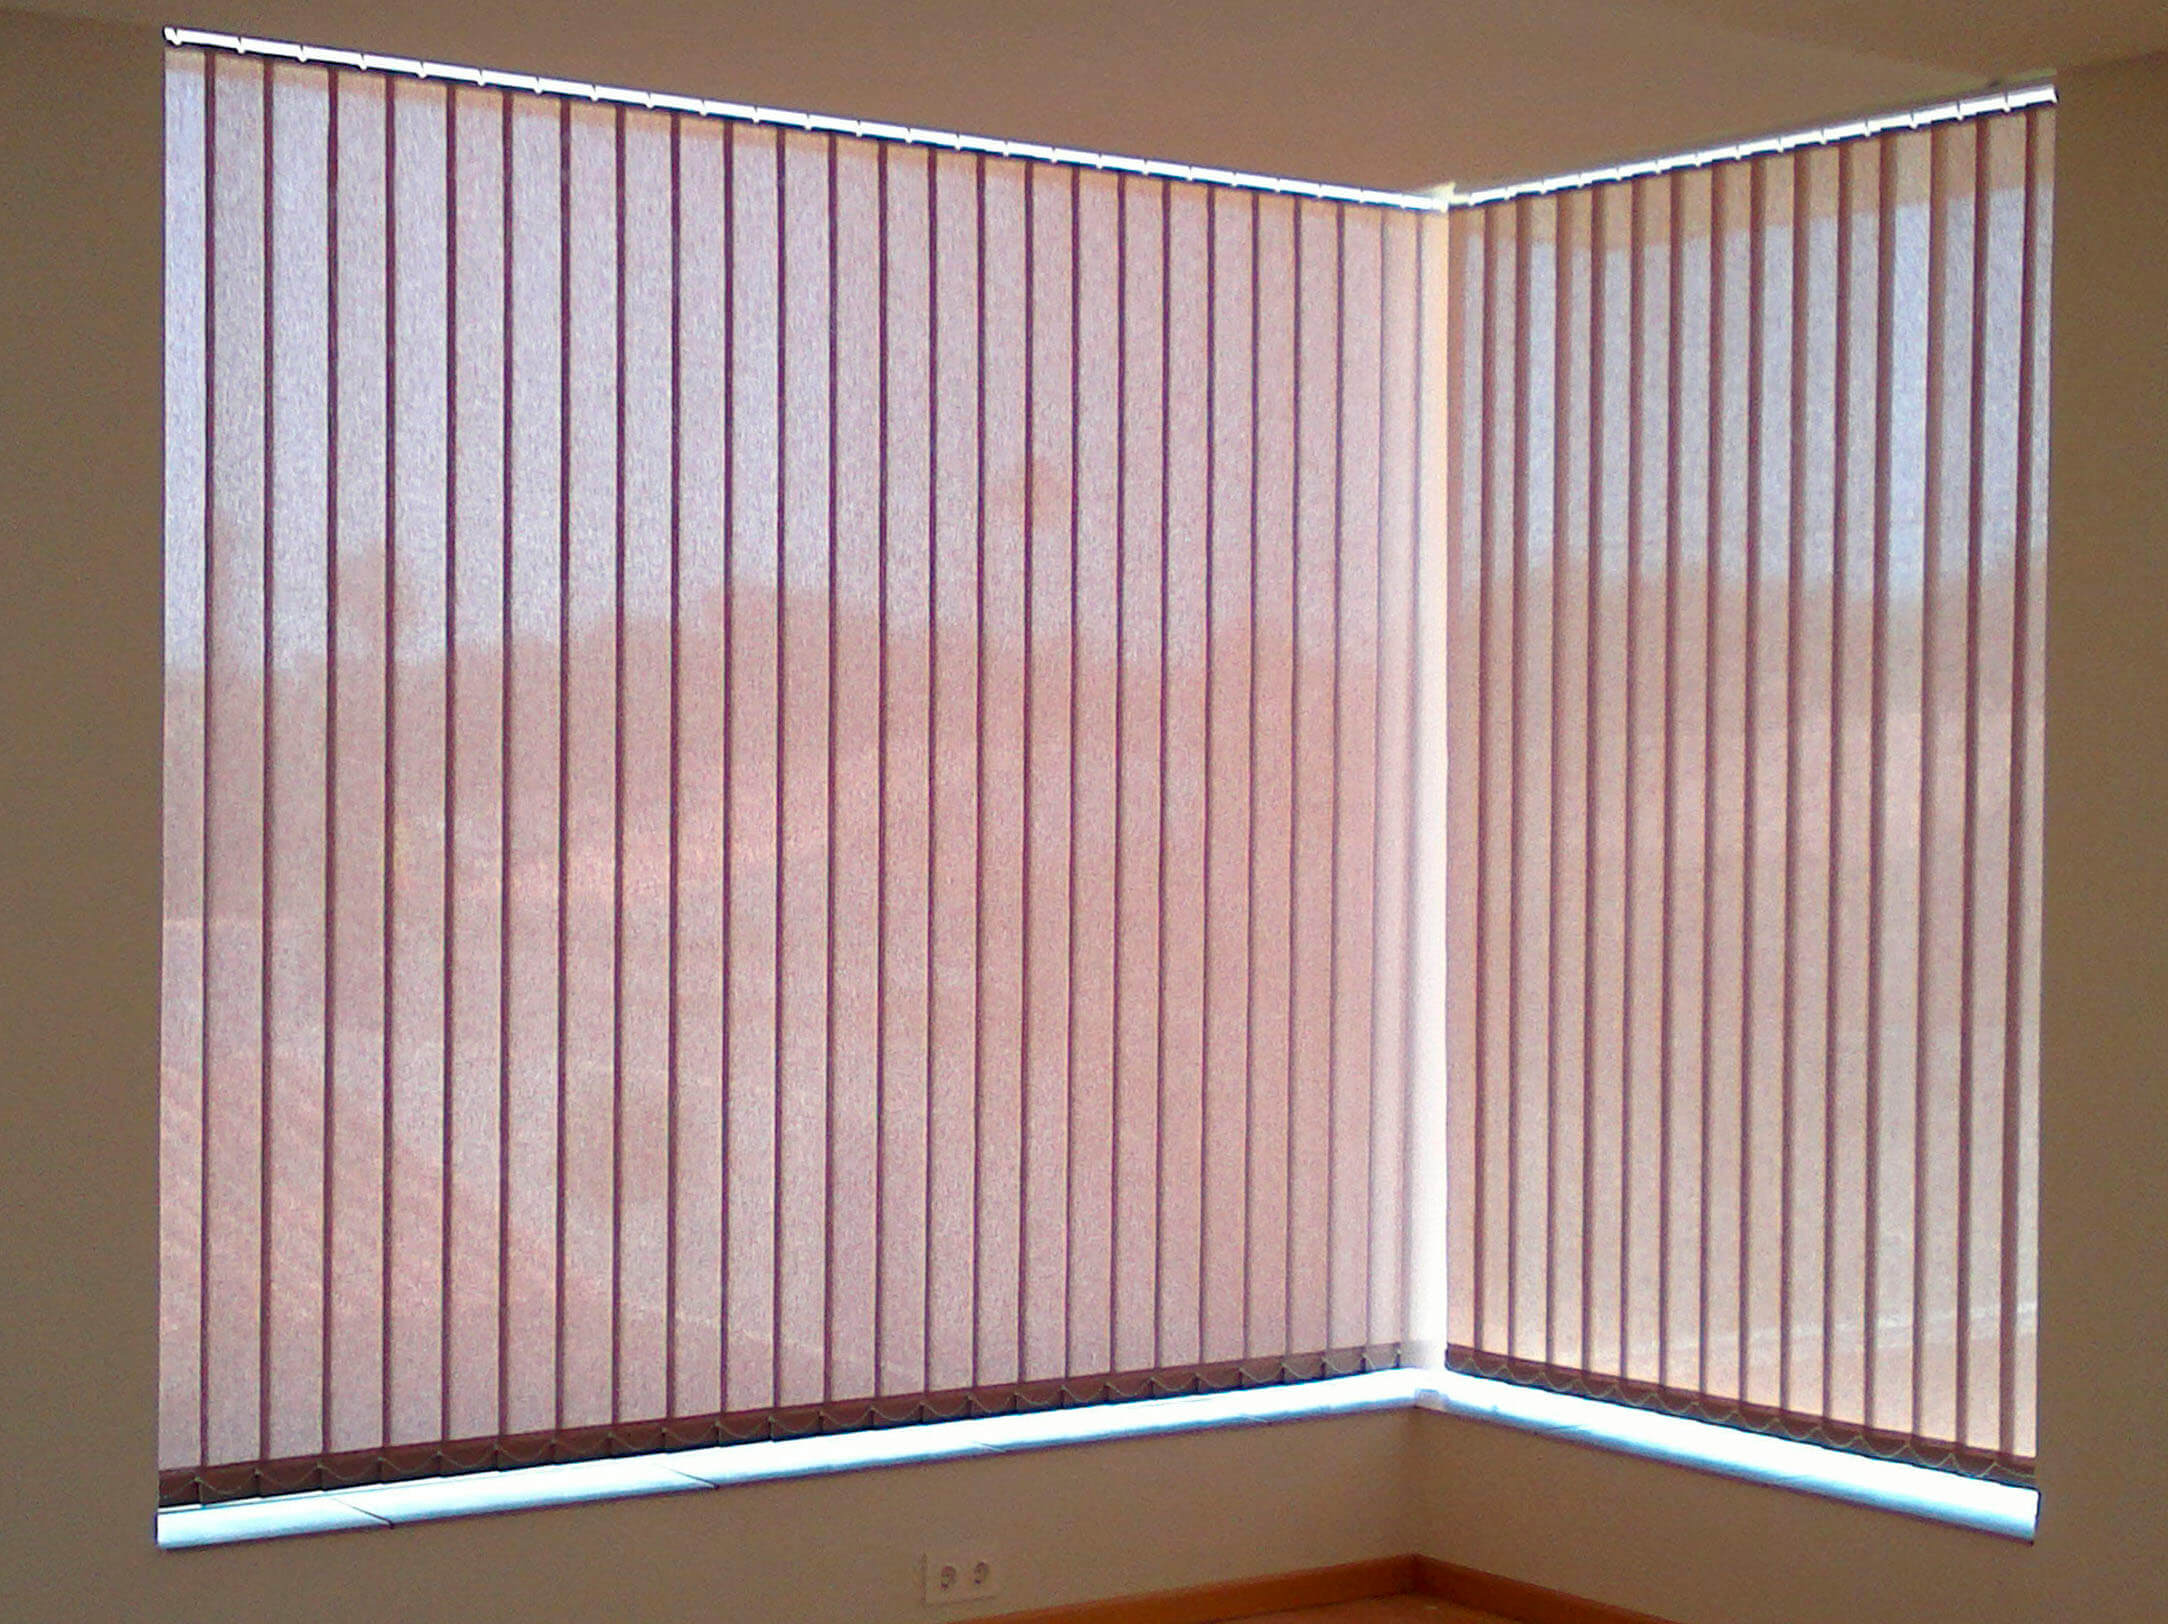 Cortina De Lamas Pvc Excellent Great Estupendo Cortinas